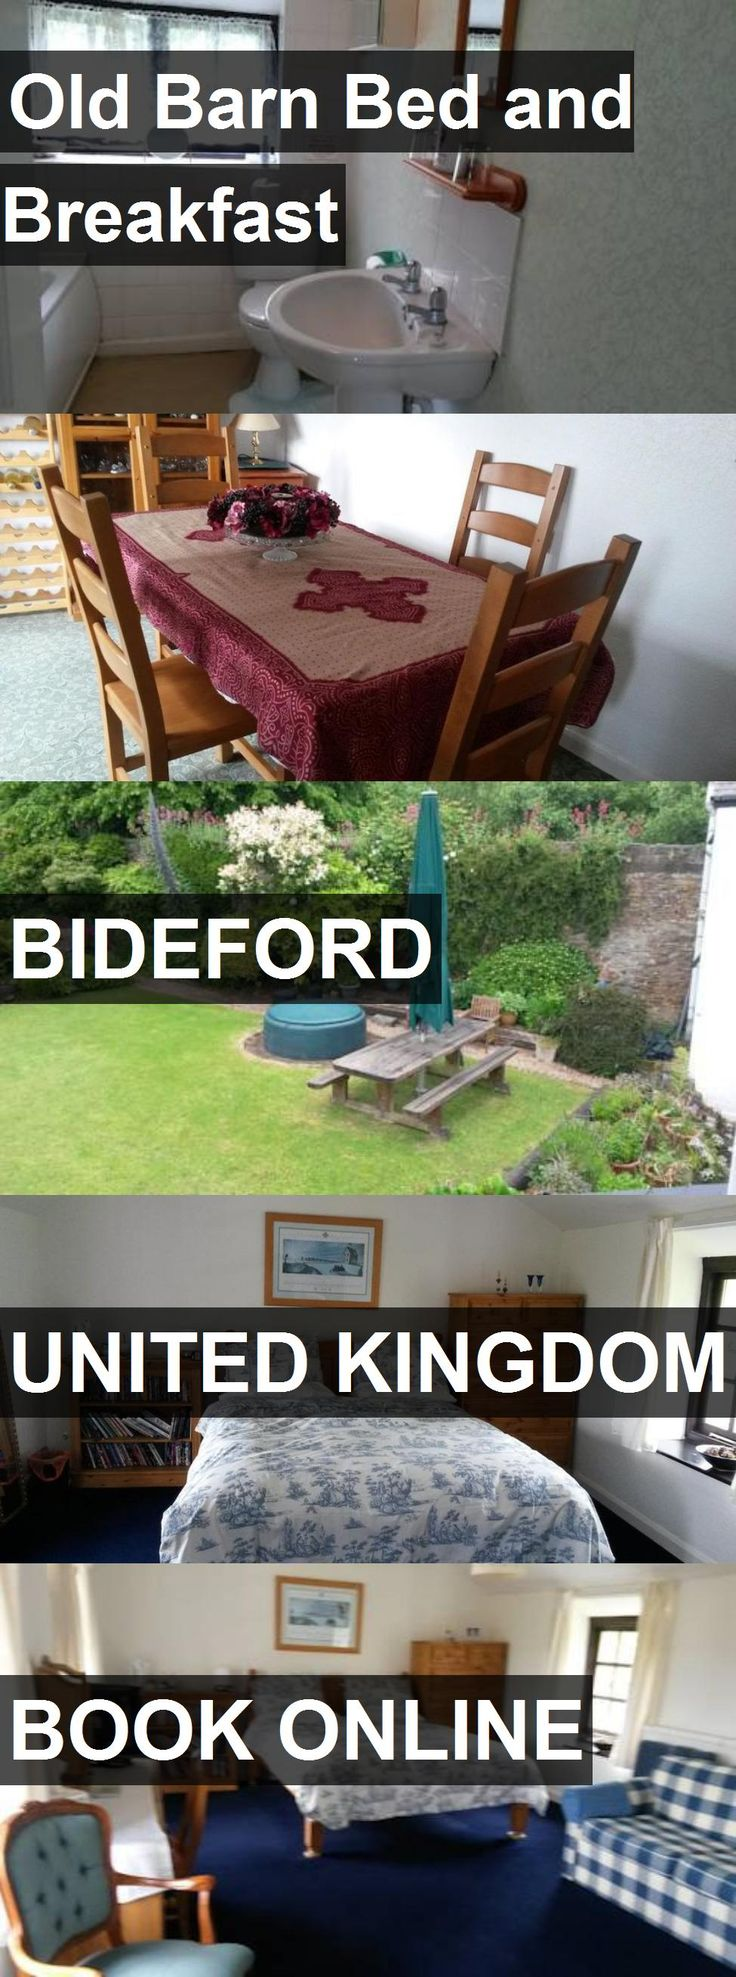 Hotel Old Barn Bed and Breakfast in Bideford, United Kingdom. For more information, photos, reviews and best prices please follow the link. #UnitedKingdom #Bideford #travel #vacation #hotel